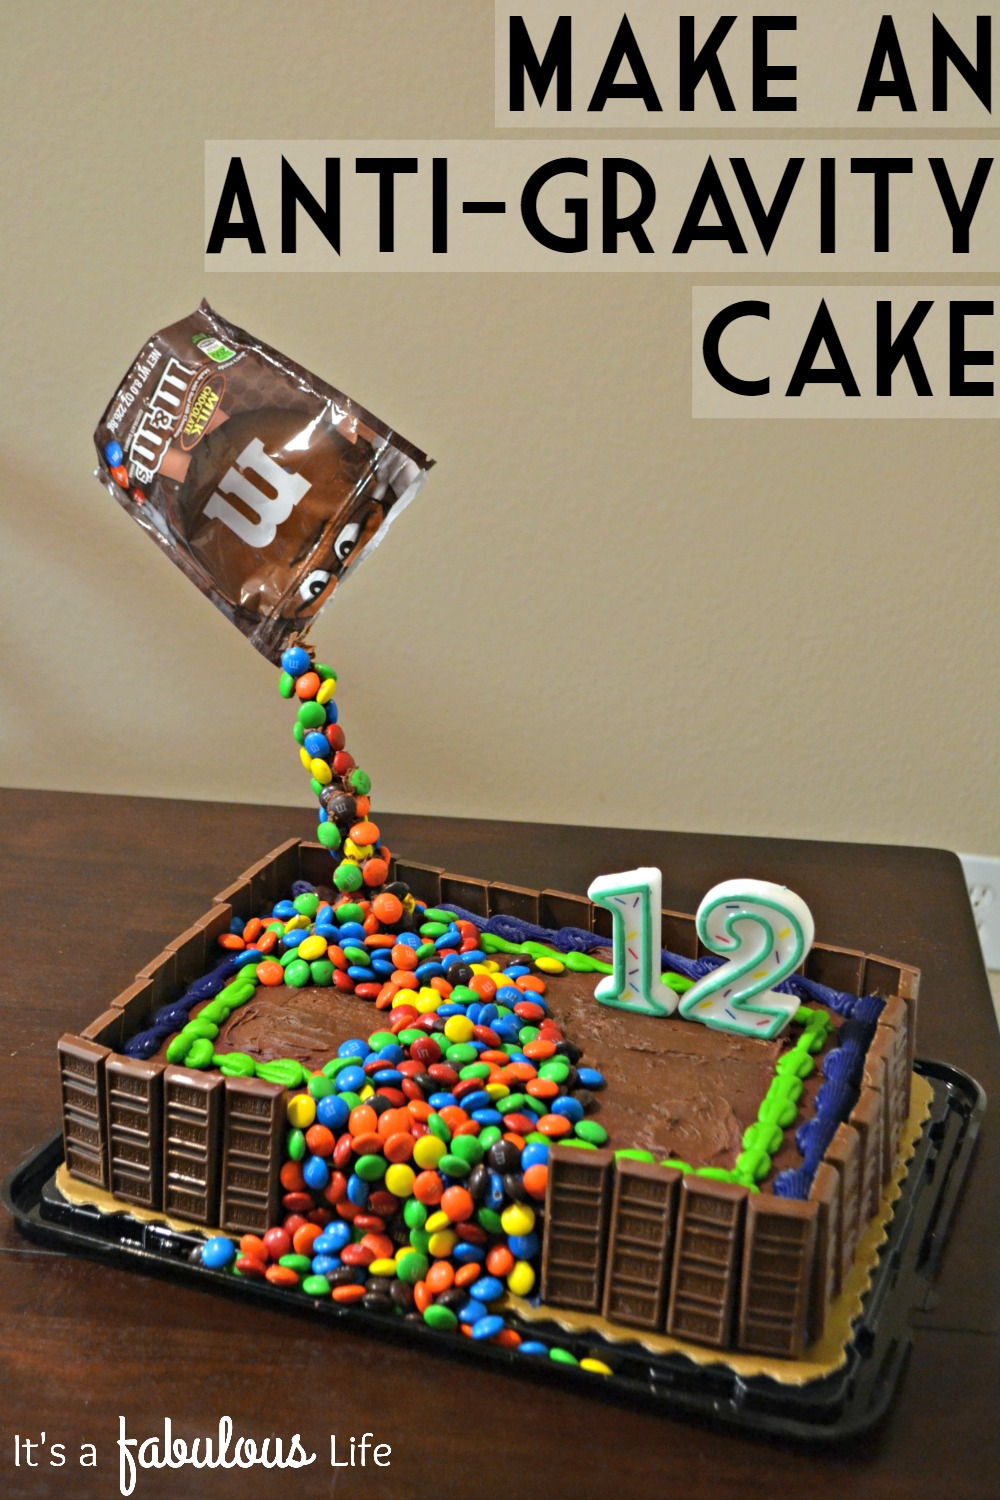 20 Birthday Cake Decoration Ideas Crystalandcomp Com